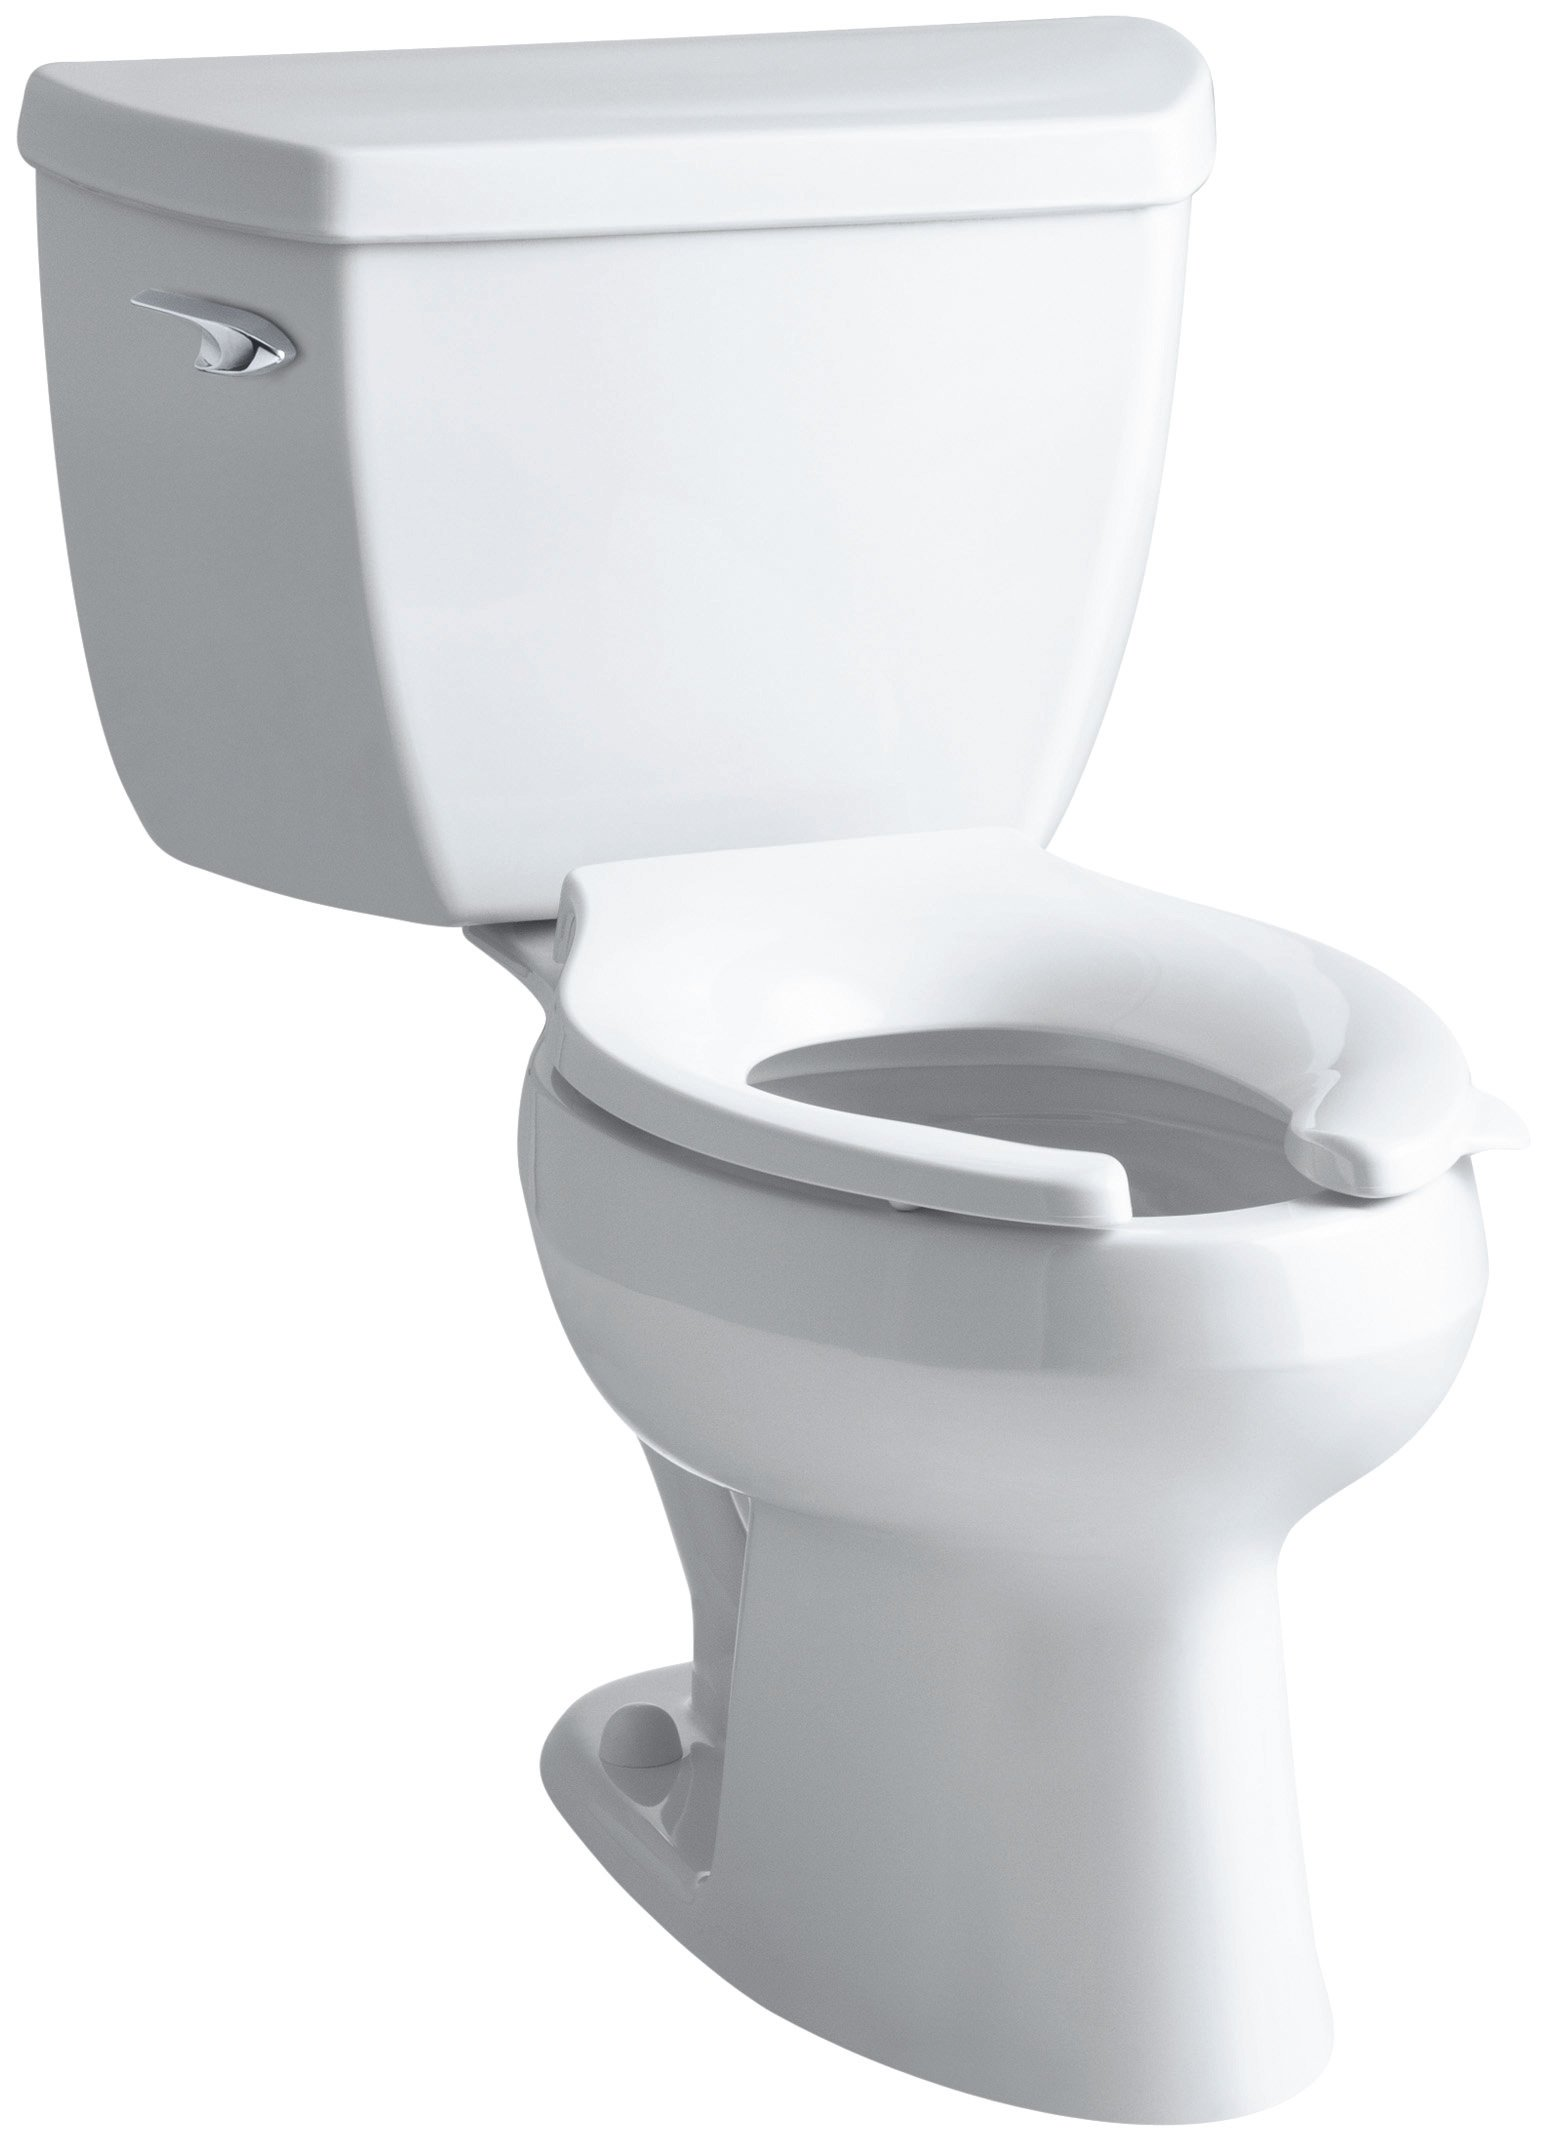 Kohler K-3531-T-0 Wellworth Classic Pressure Lite Elongated 1.0 gpf Toilet with Tank Cover Locks and Left-Hand Trip Lever, Less Seat, White